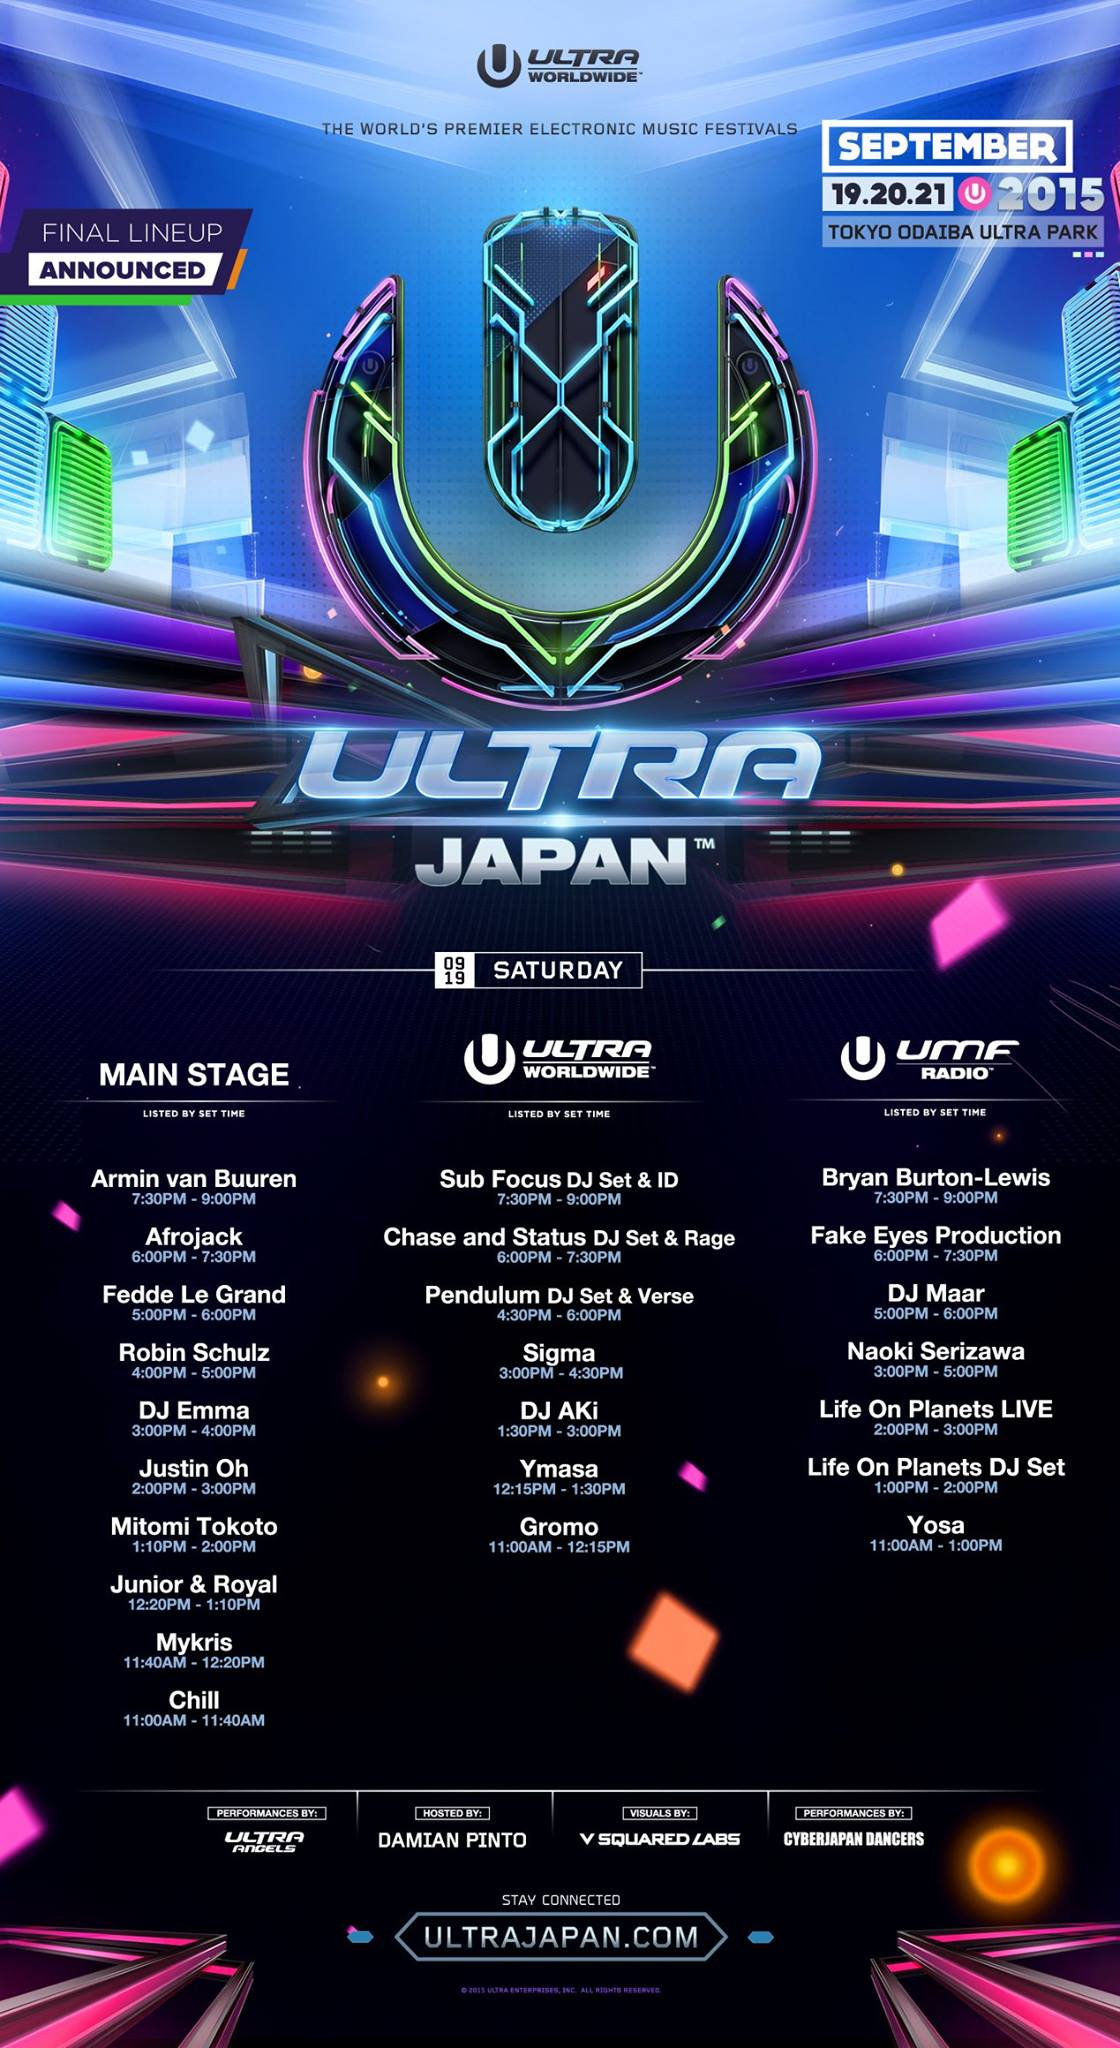 ULTRA JAPAN 2015 DAY 1